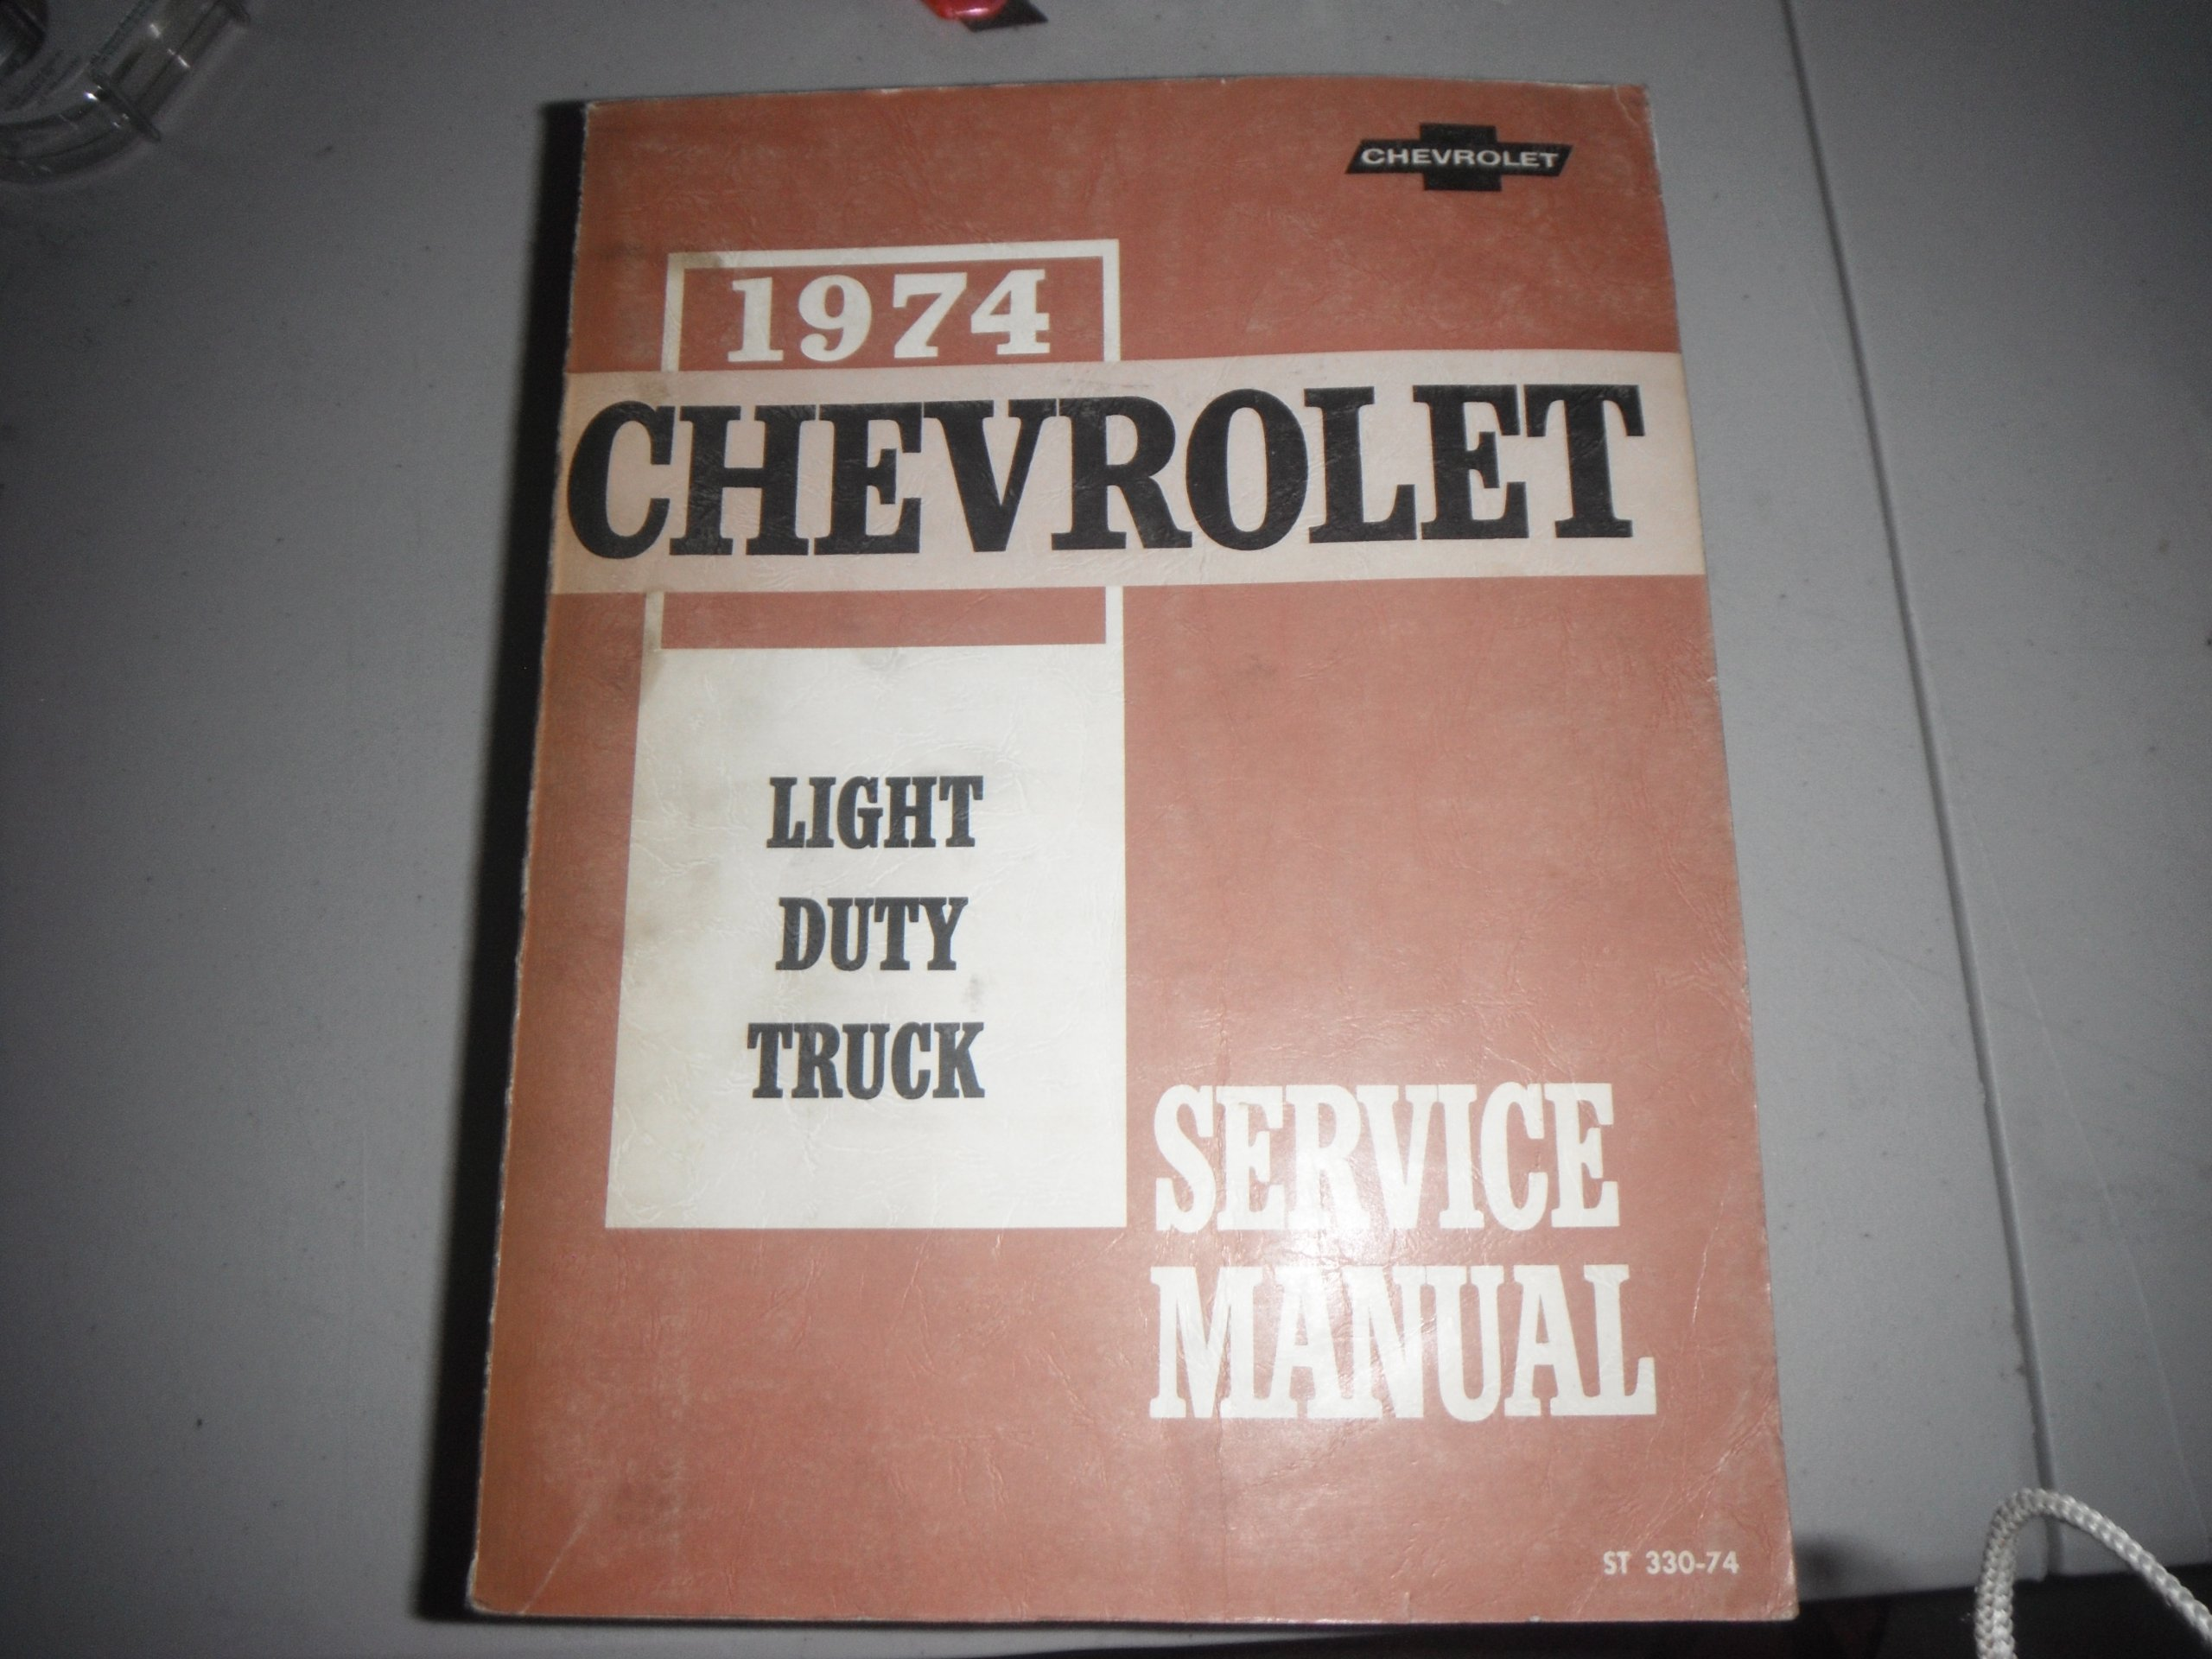 1974 Chevrolet Light Duty Truck Service Manual: No author stated:  Amazon.com: Books